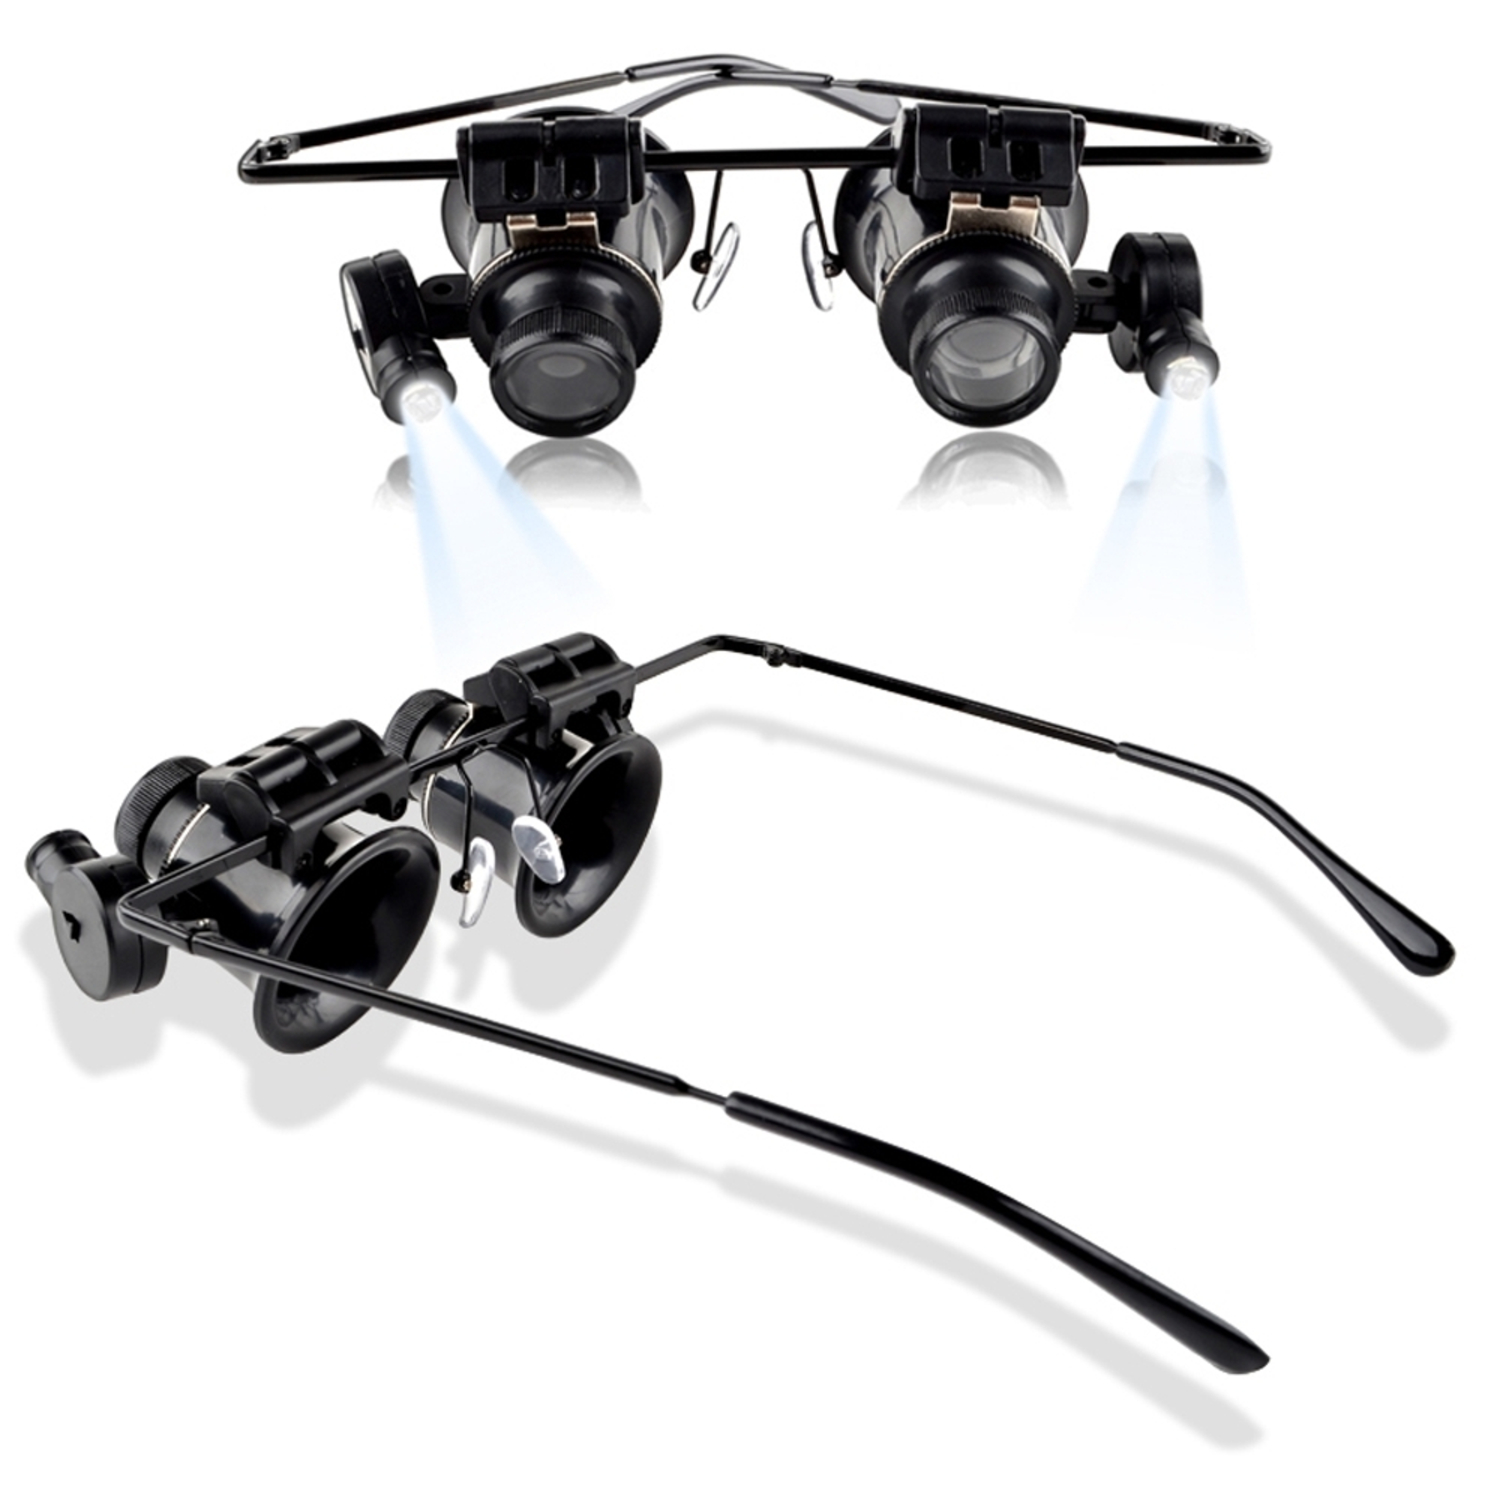 Insten 20X Magnifier Magnifying LED Light Glasses Type Eye Glass Loupe for Watch Repair Jeweler Jewelry Appraisal